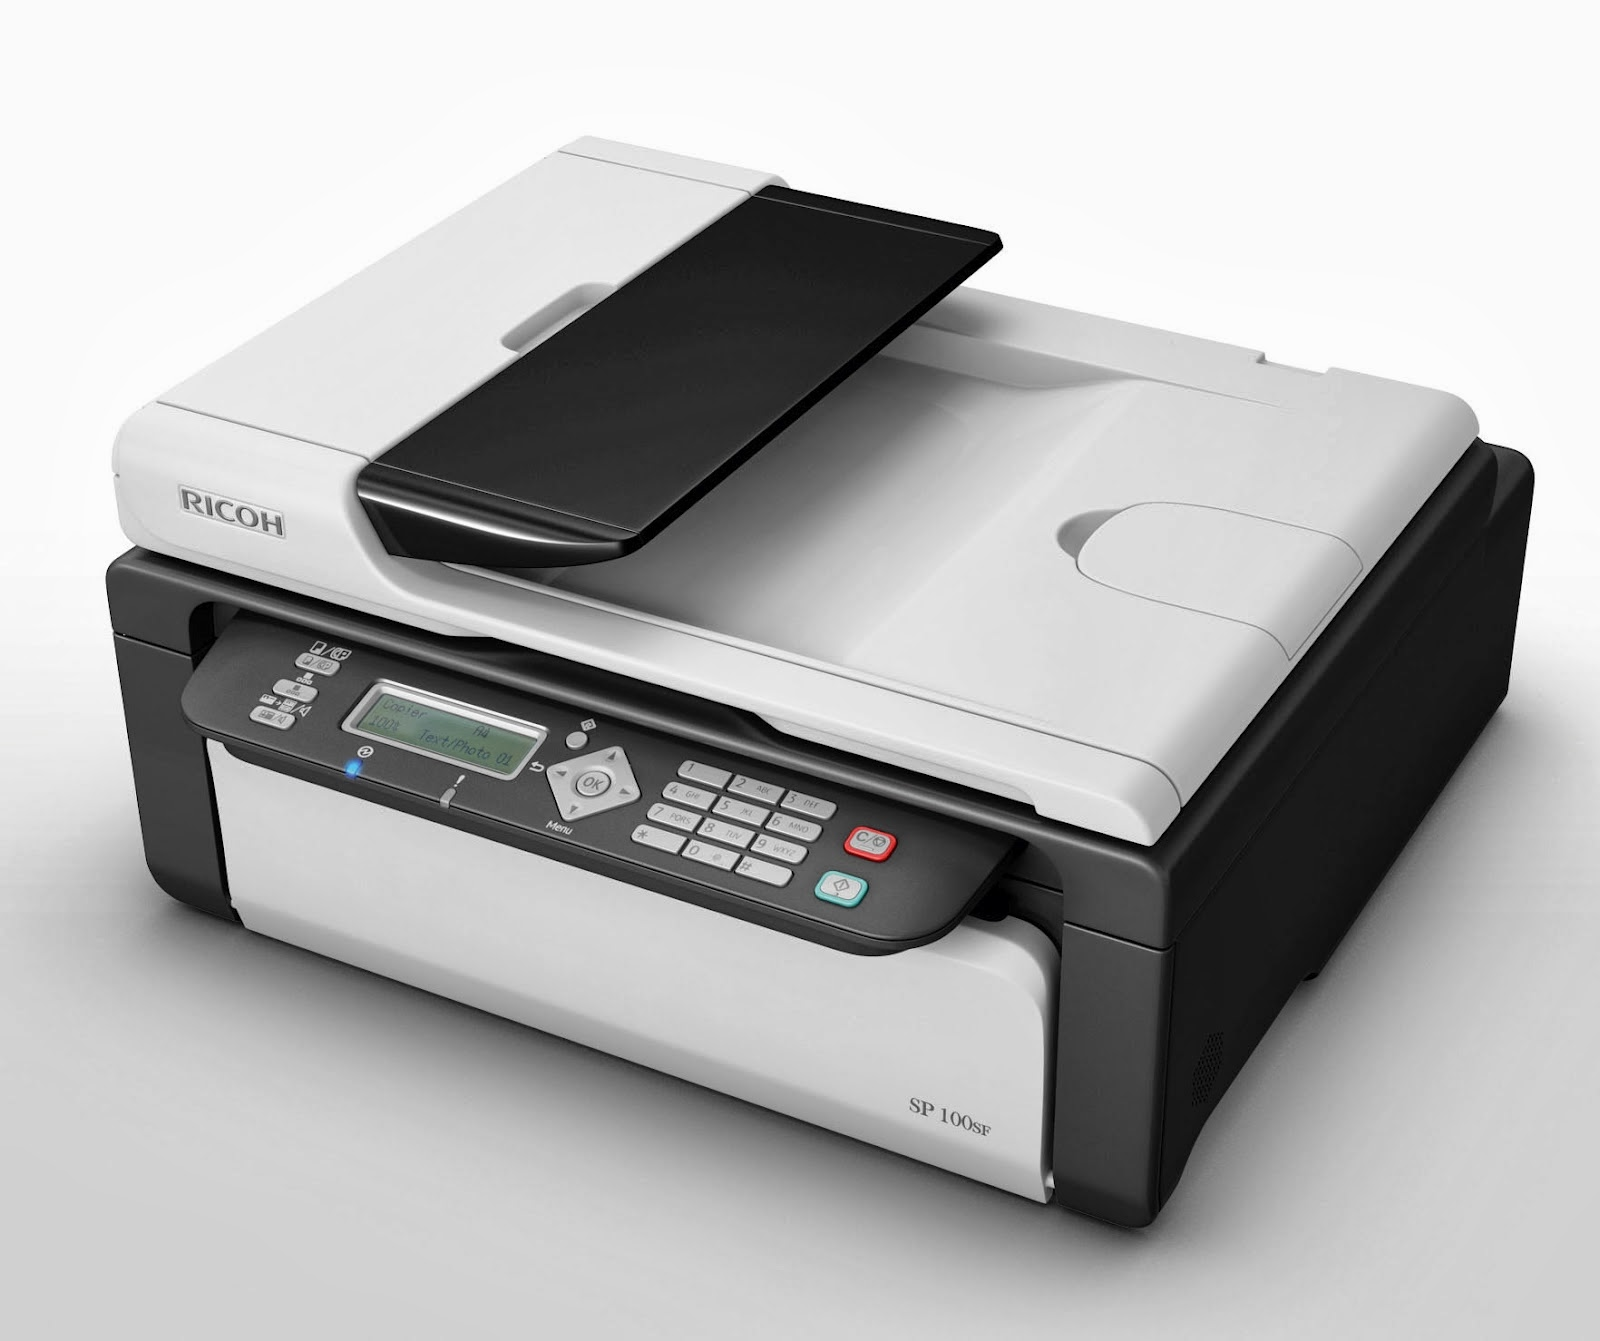 Ricoh sp100 driver free download